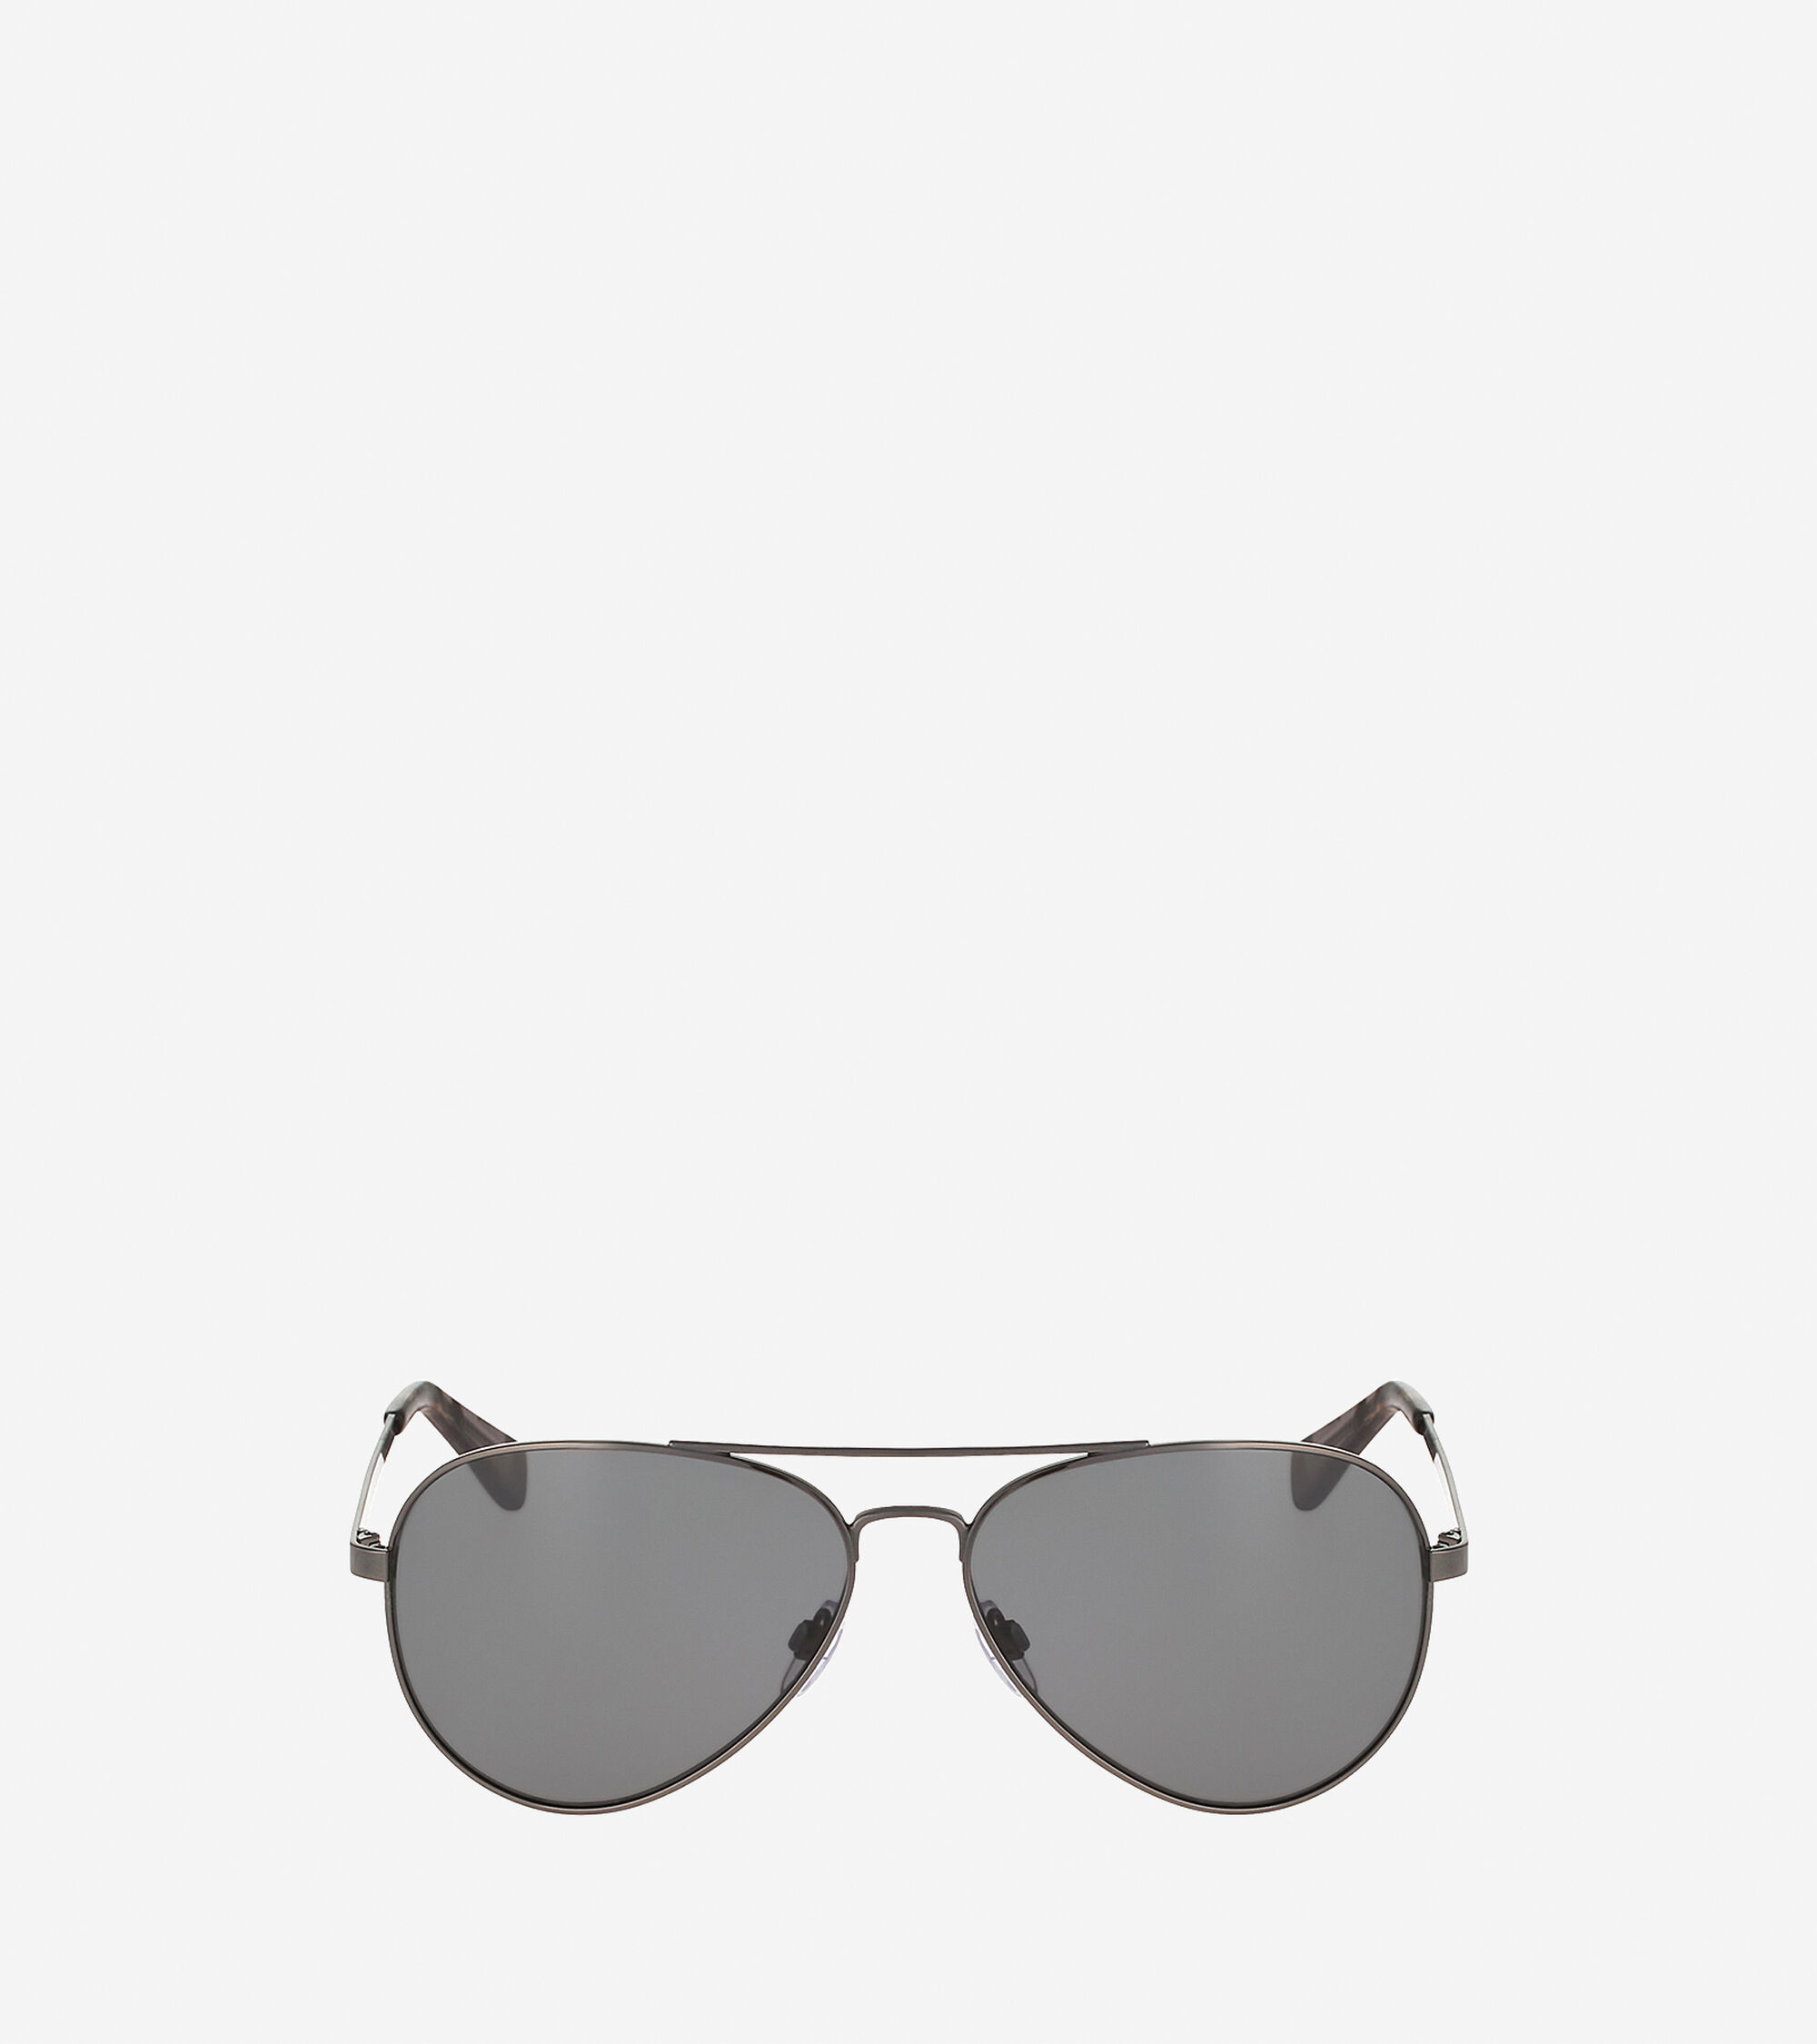 047d0128a3 Mens Metal Aviator Sunglasses in Dark Gunmetal